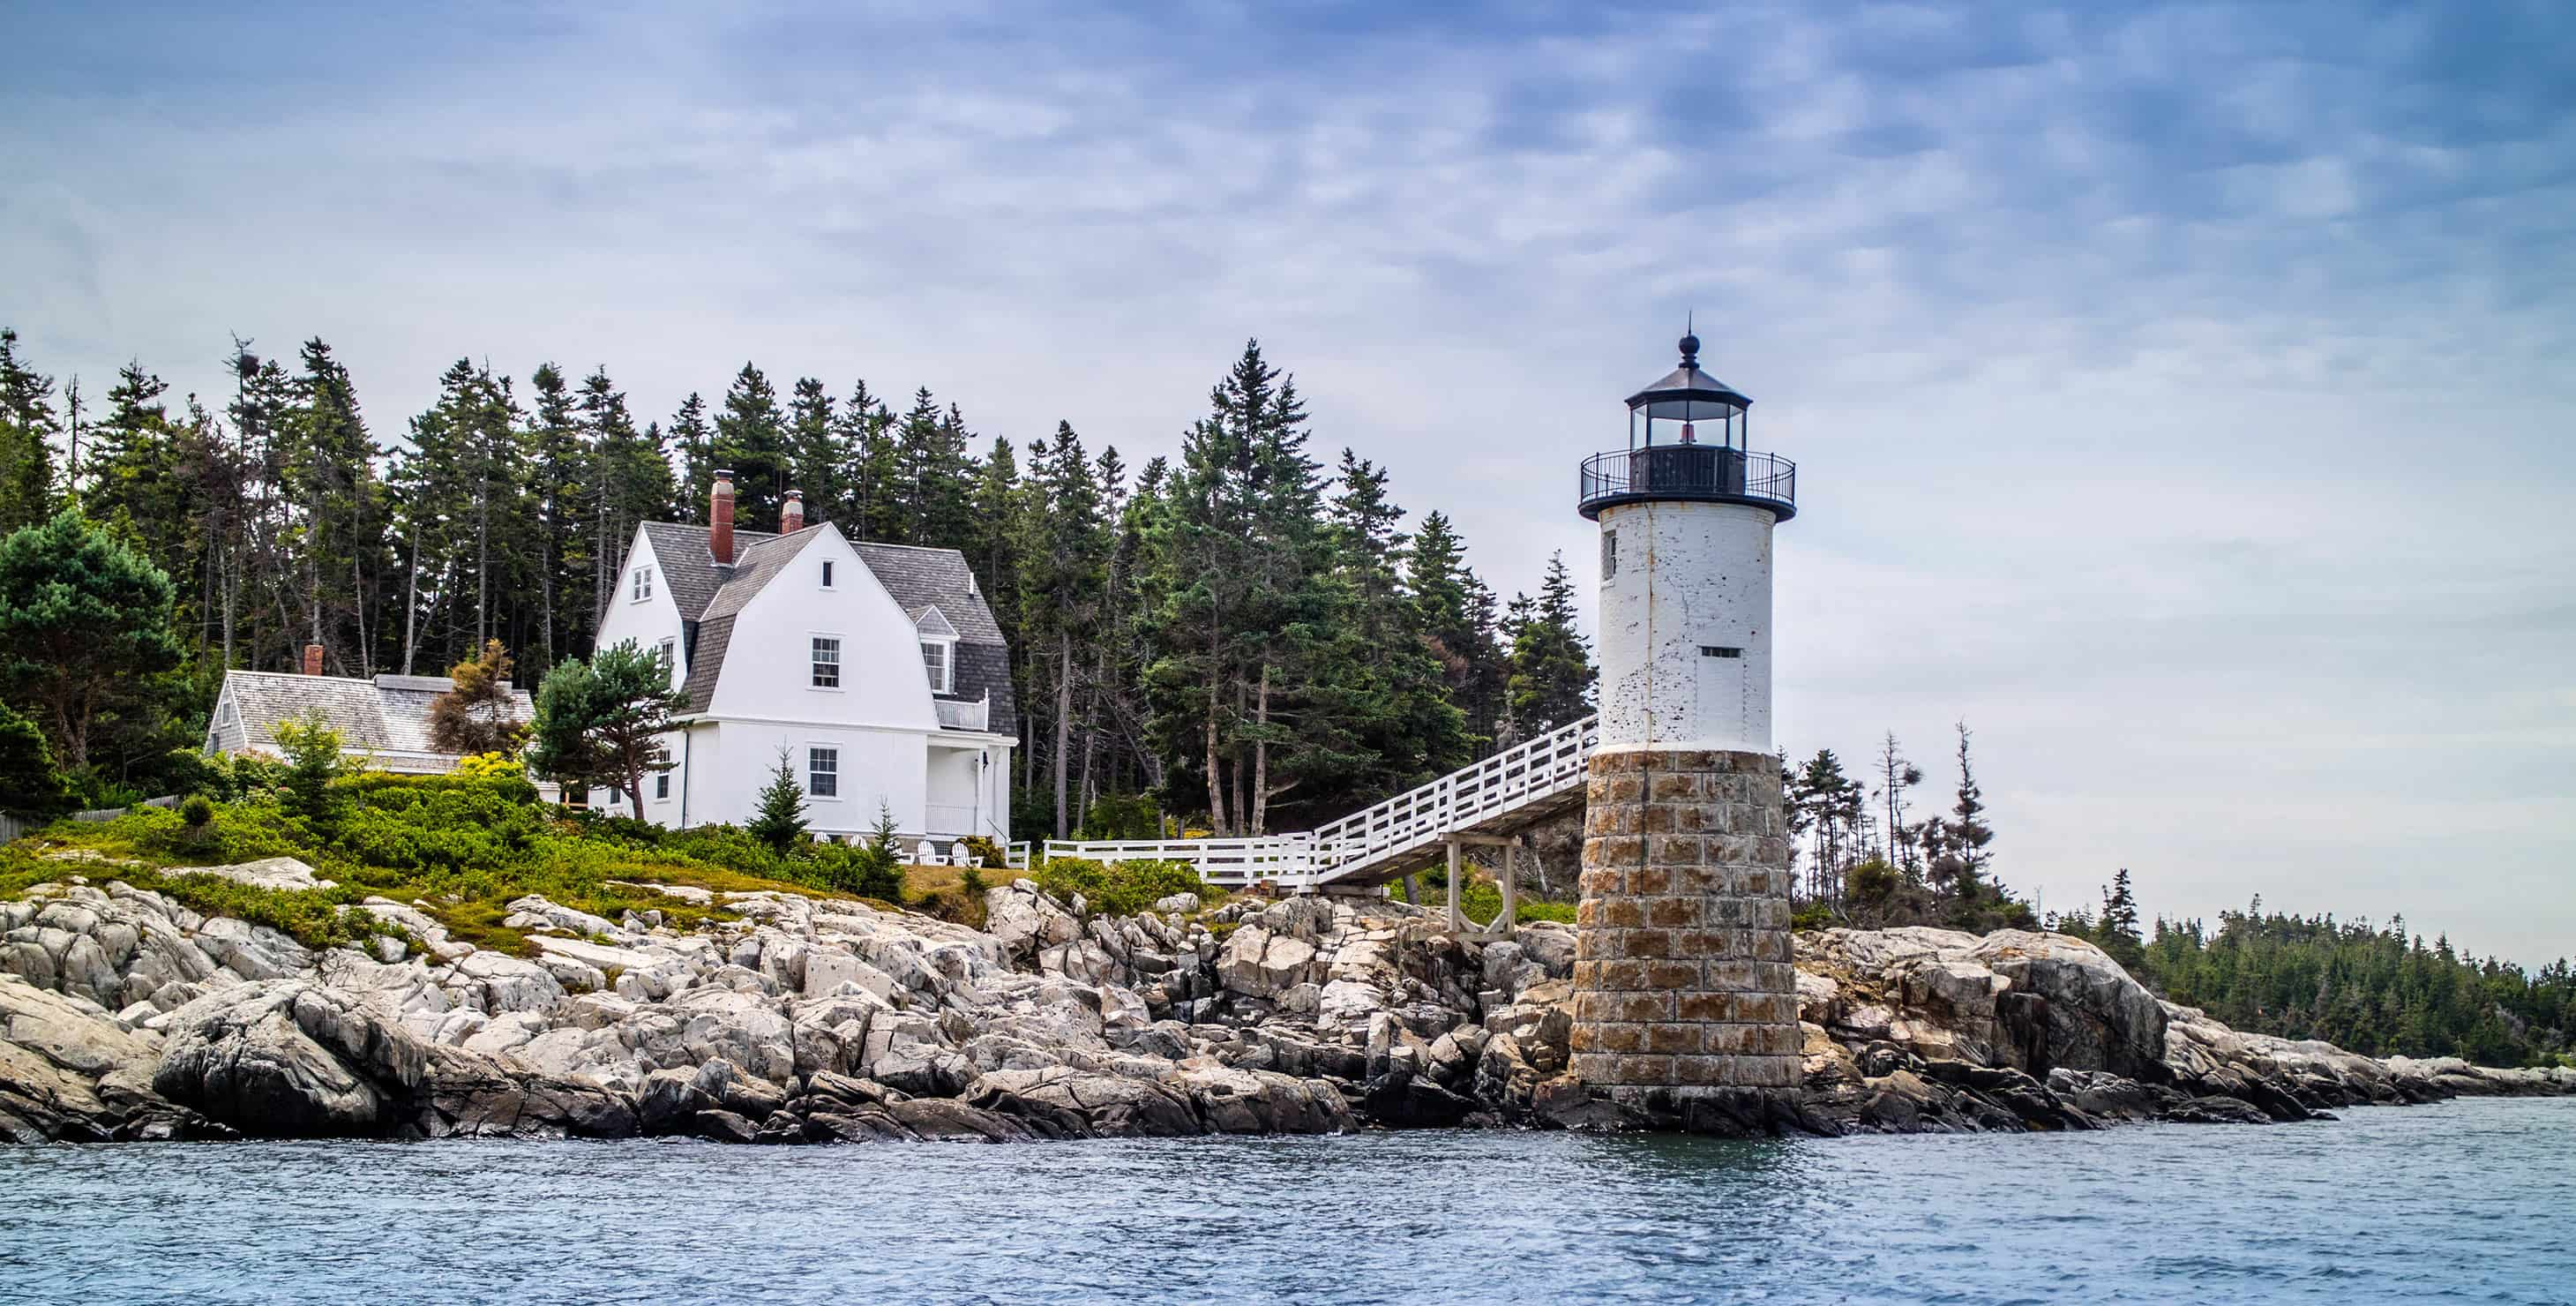 Point Robinson Lighthouse in Acadia National Park, Maine